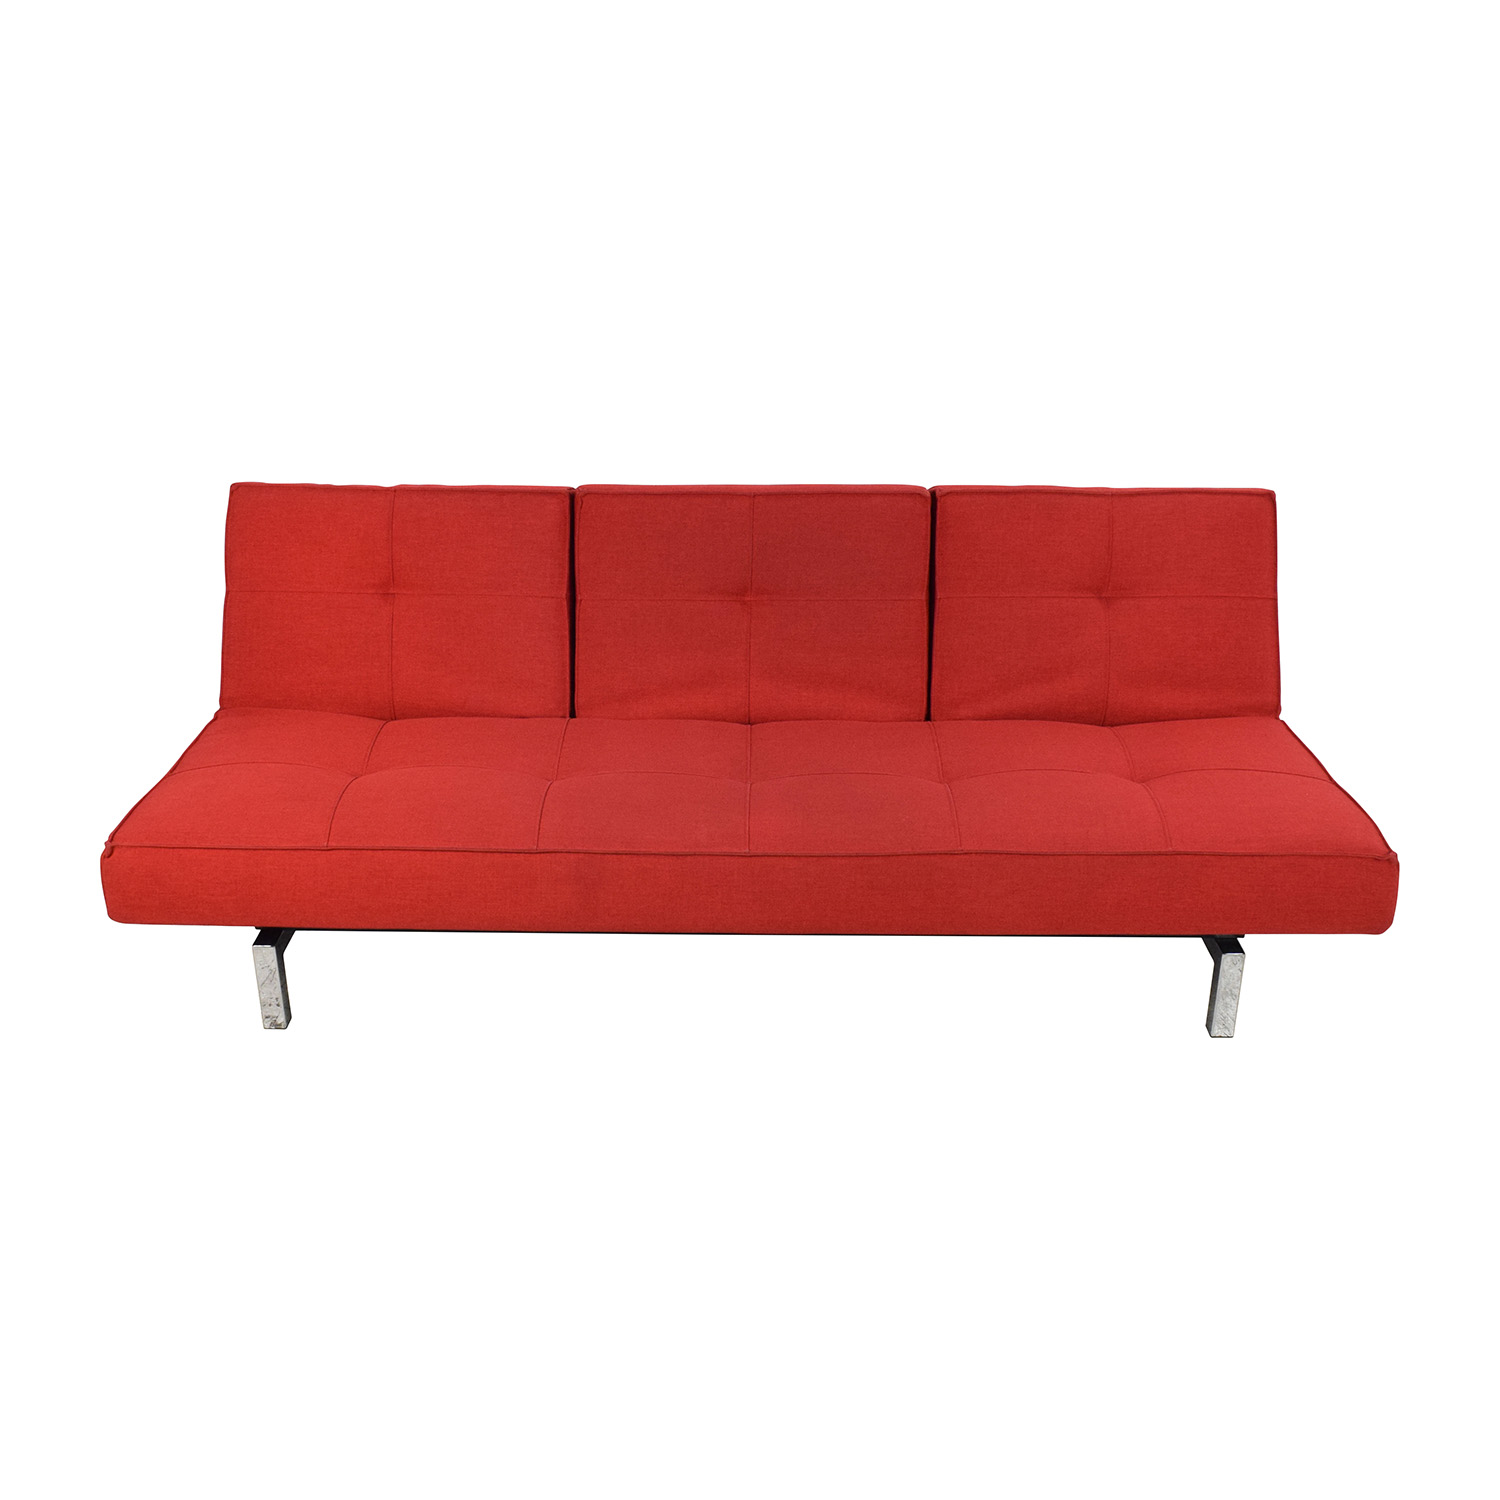 Room and Board Room & Board Eden Convertible Red Sofa price